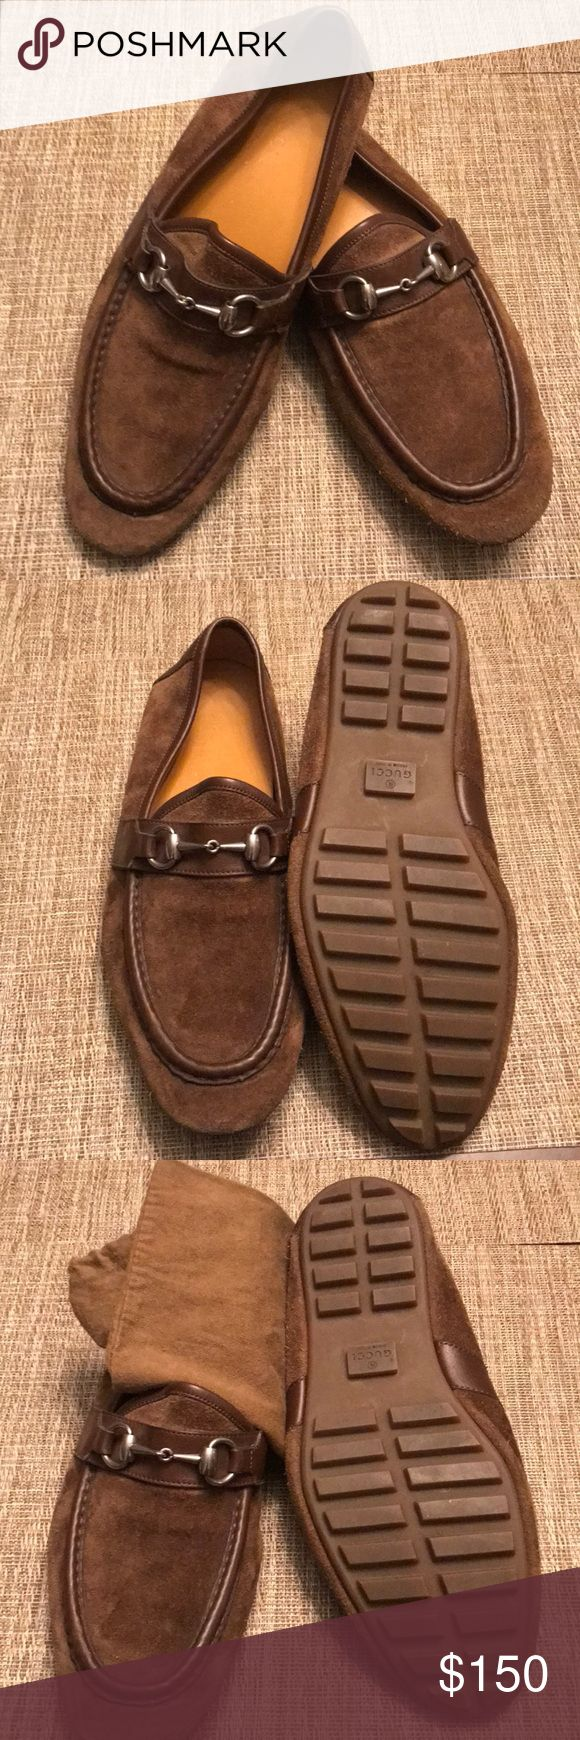 Gucci Suede Loafers in Brown for Men Brown suede Gucci round-toe Loafers with brass-tone hardware, covered heels and rubber soles. Good condition. Gucci Shoes Loafers & Slip-Ons